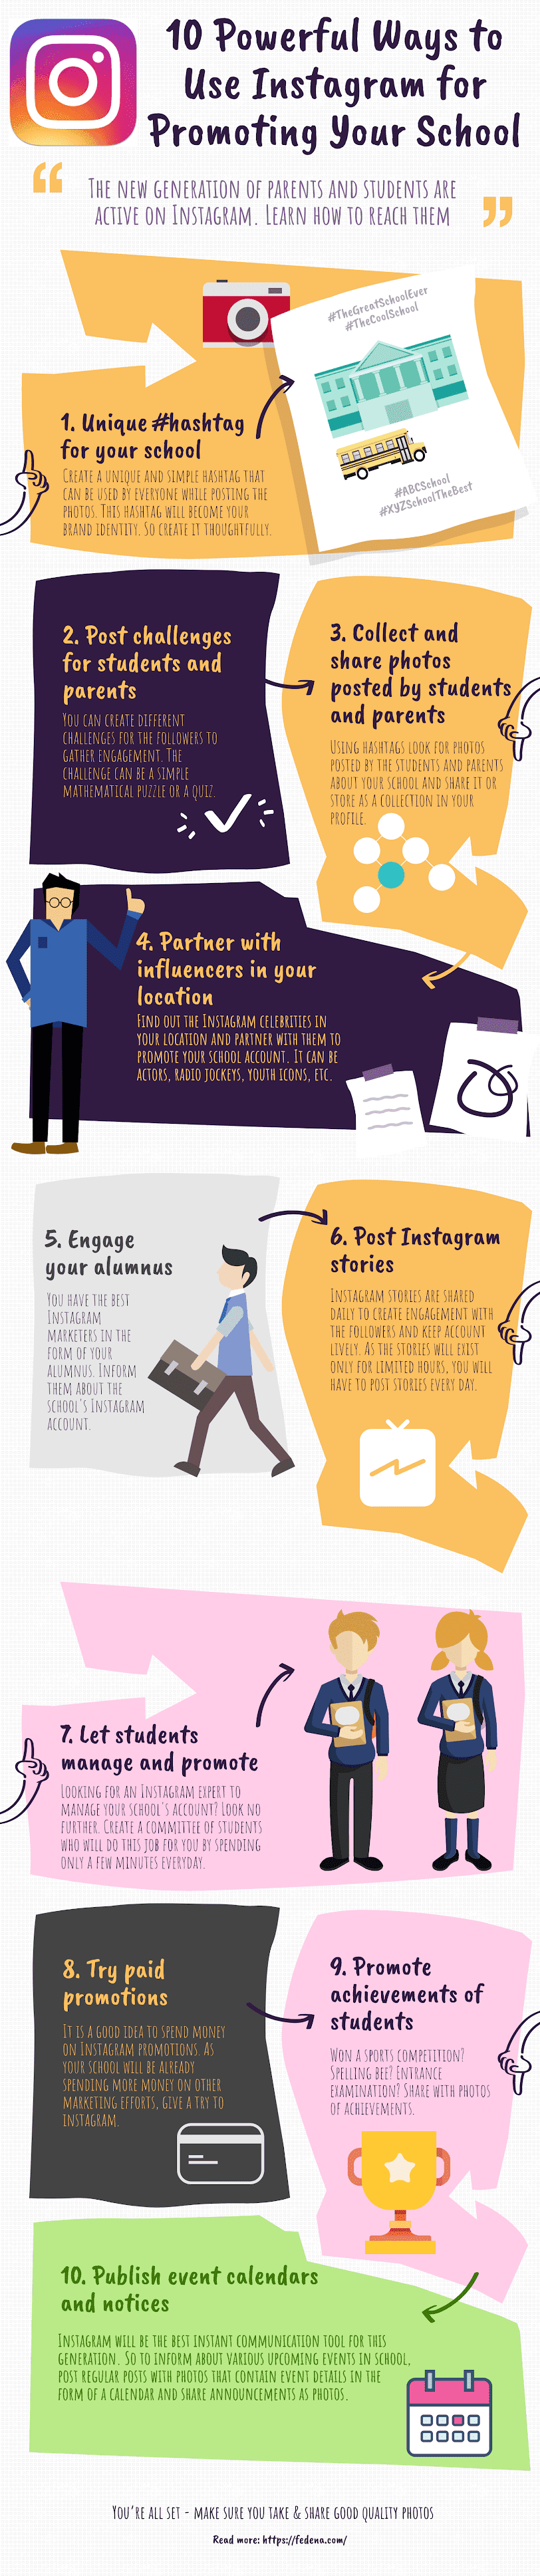 10 Powerful Ways to Use Instagram for Promoting Your School #infographic